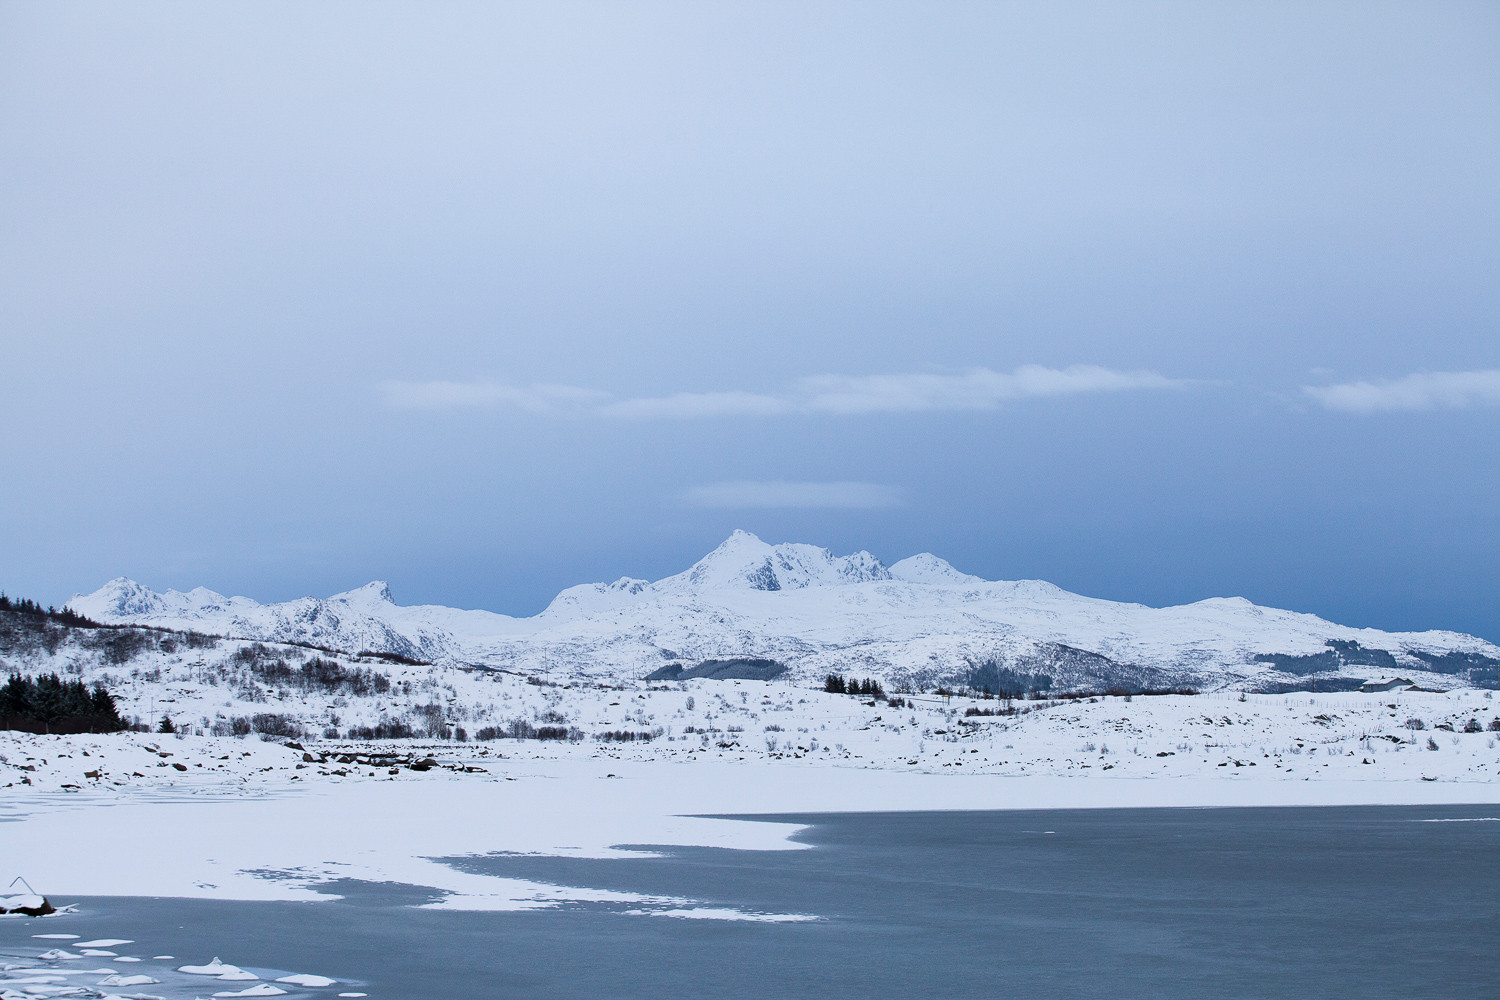 From Haukland